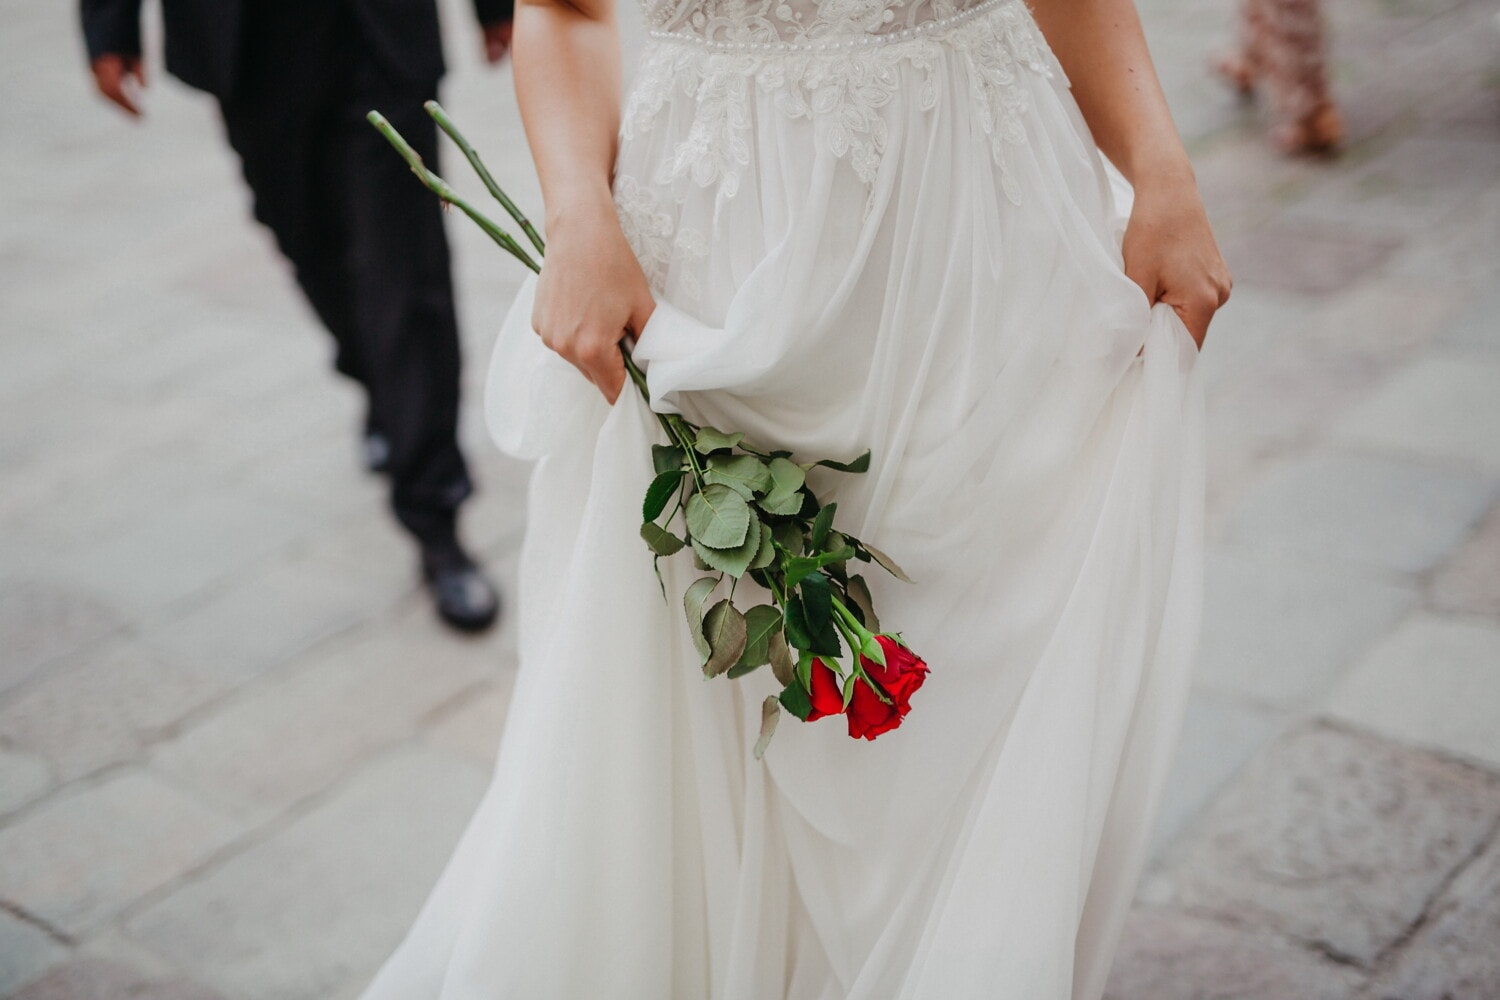 walking, bride, holding, roses, romantic, wedding dress, marriage, woman, fashion, engagement